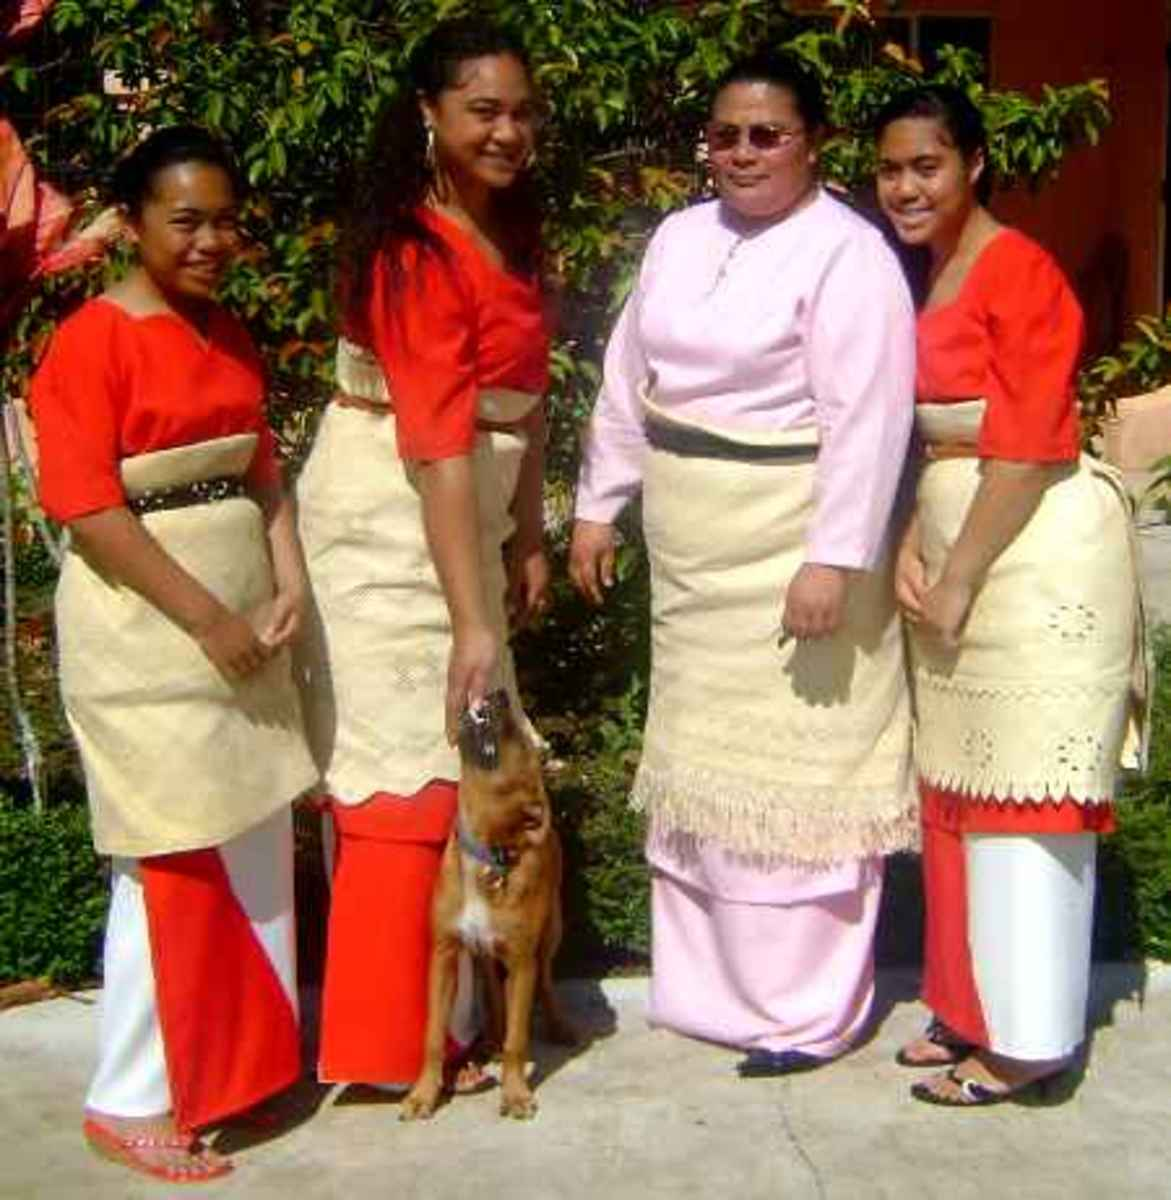 Typical Tongan women formal attire with modest dress, taovala and kafa around waist.